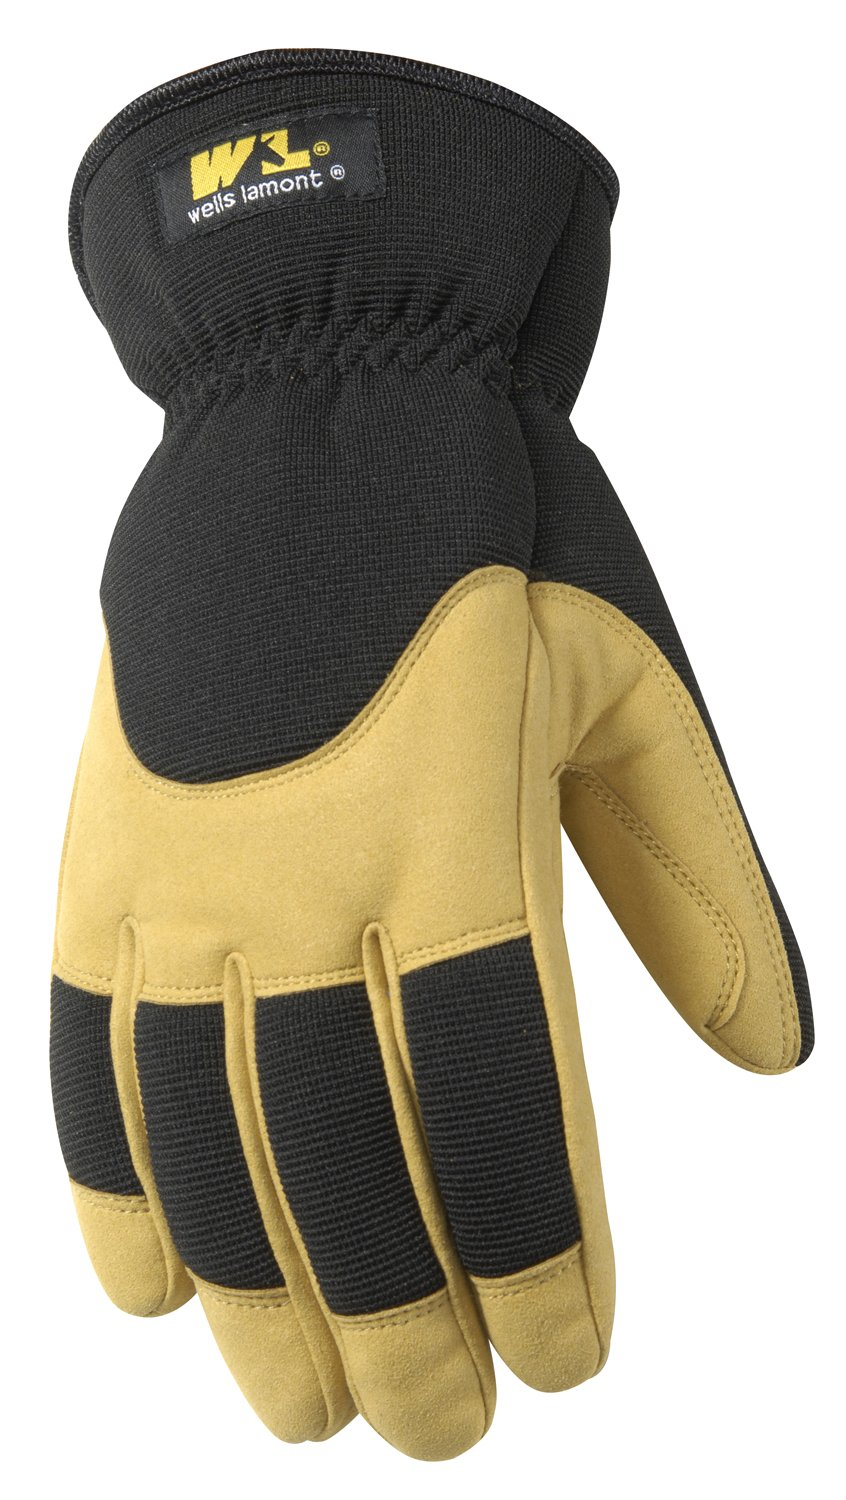 Insulated leather work gloves amazon - Wells Lamont Synthetic Leather Work Gloves Insulated Cold Weather Large 7092l Amazon Com